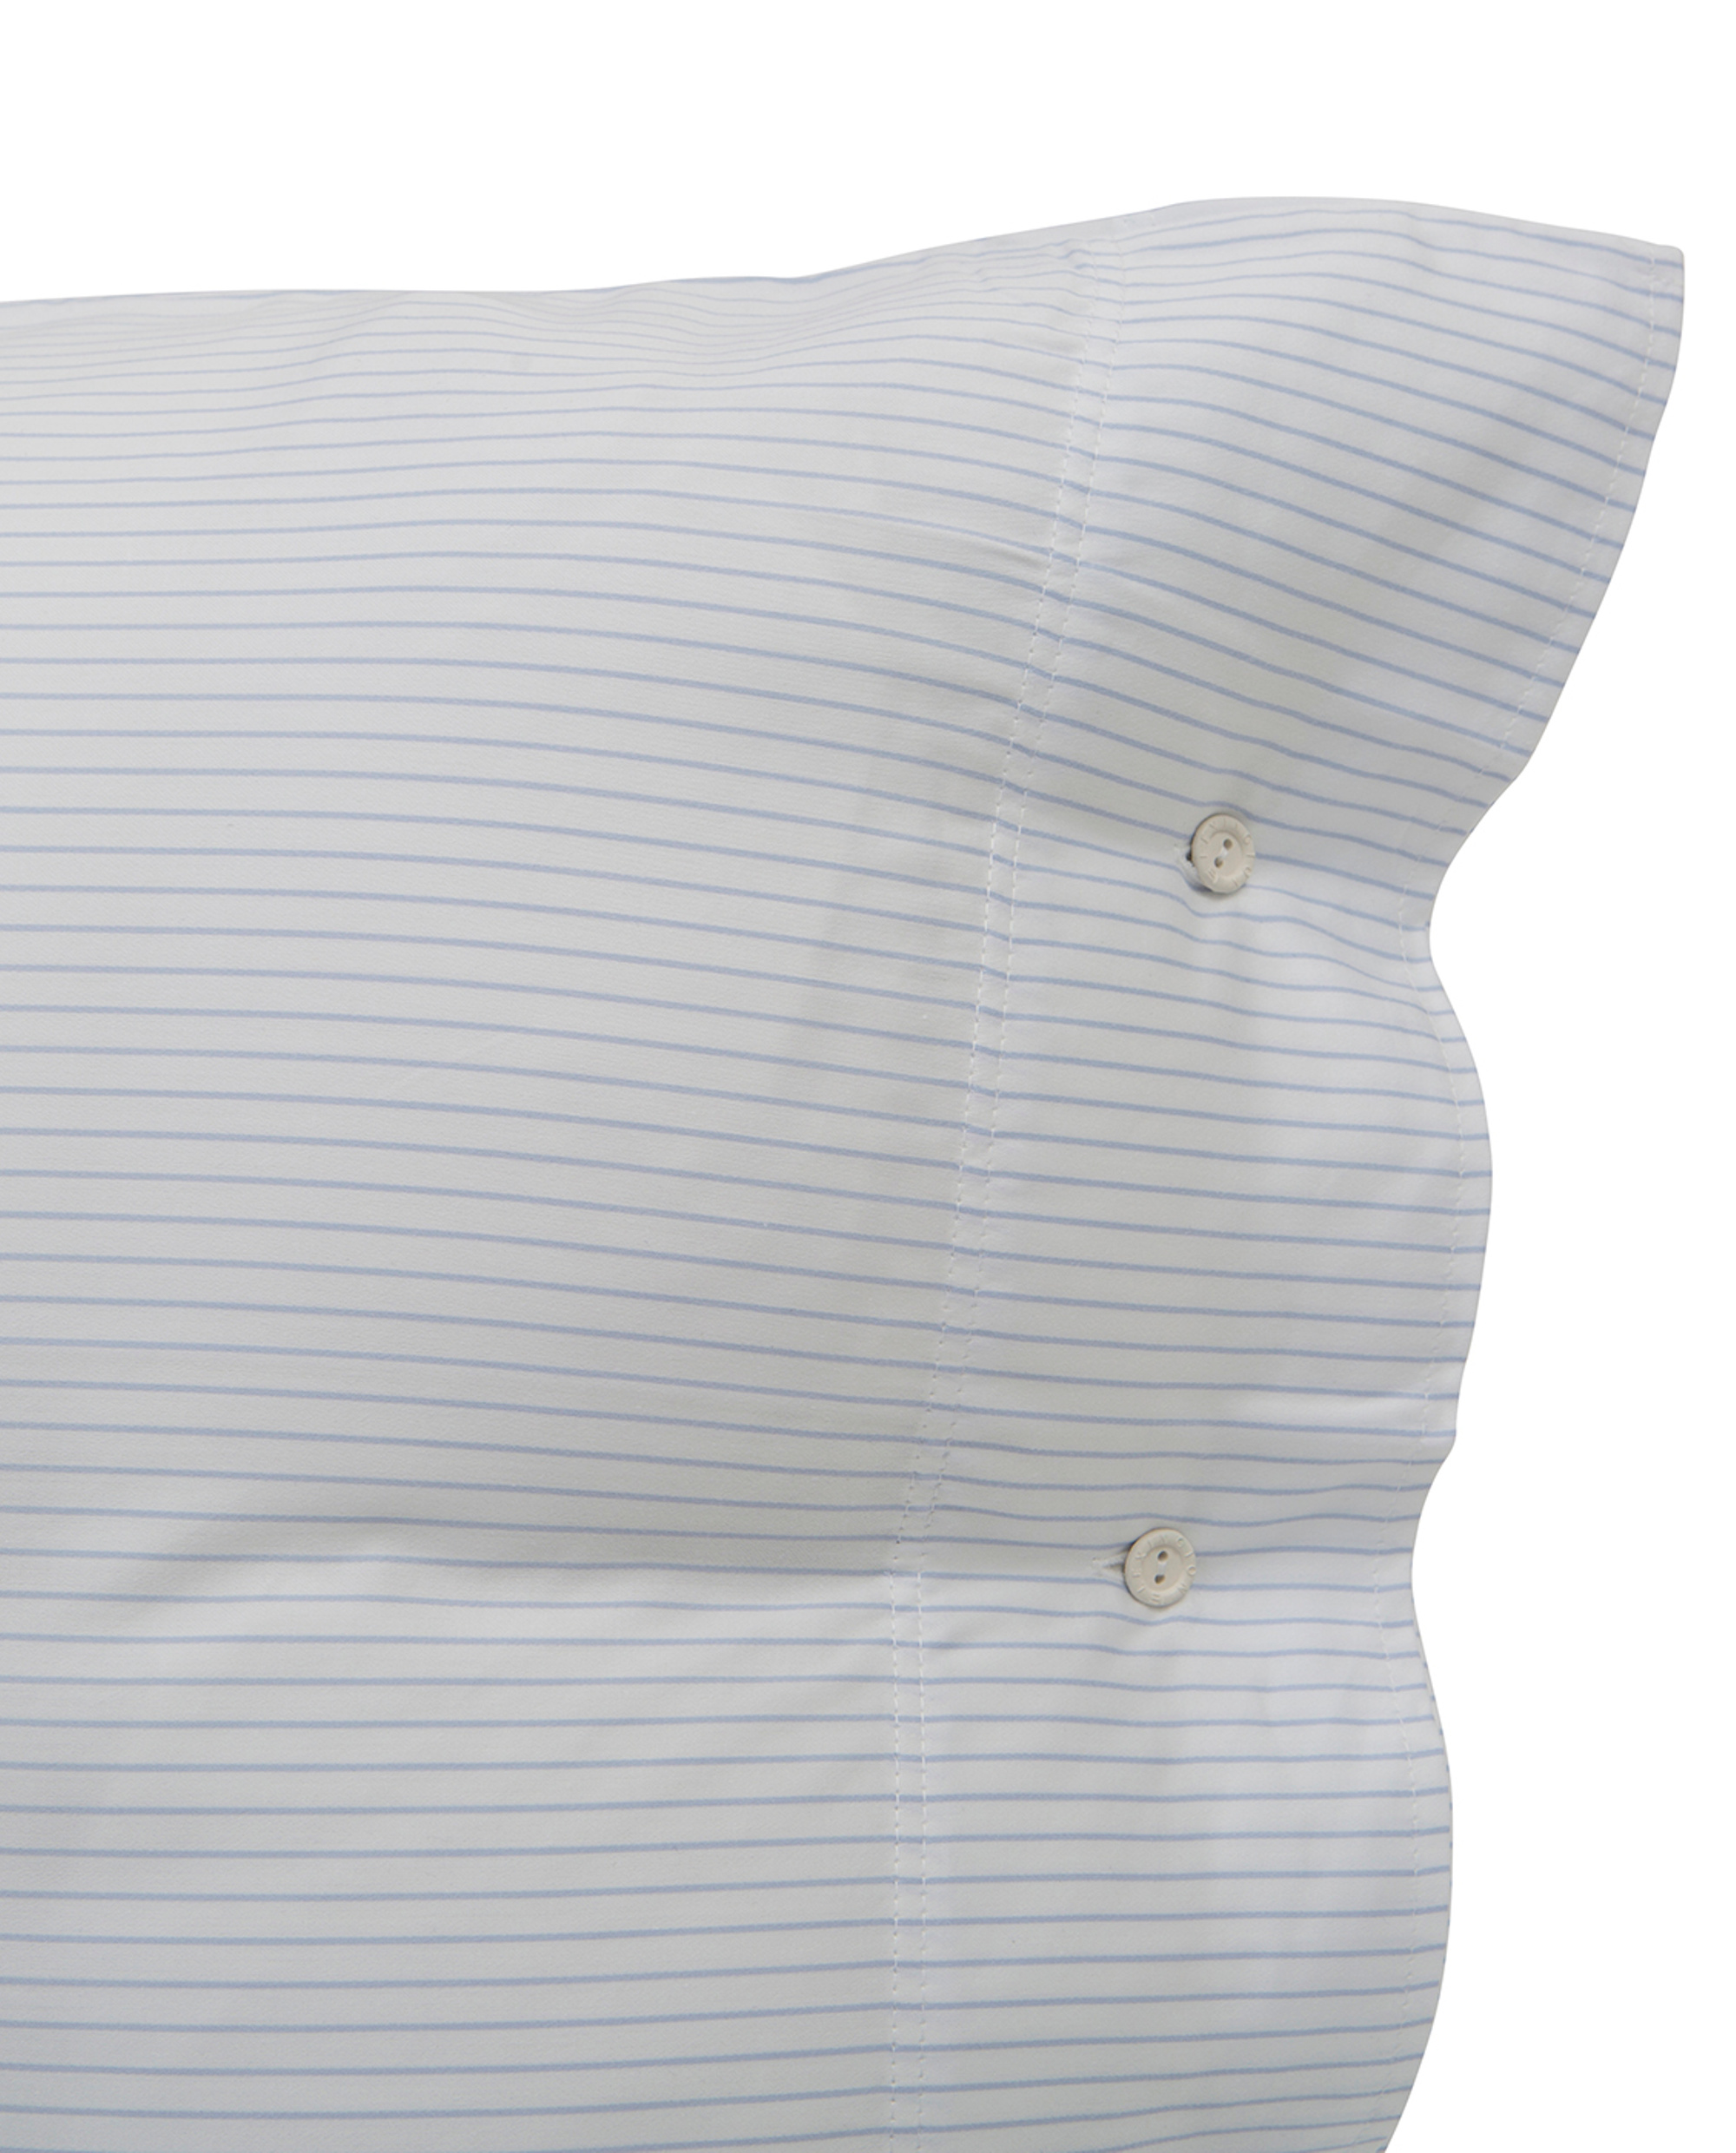 Hotel Tencel Stripe White/Blue Pillowcase